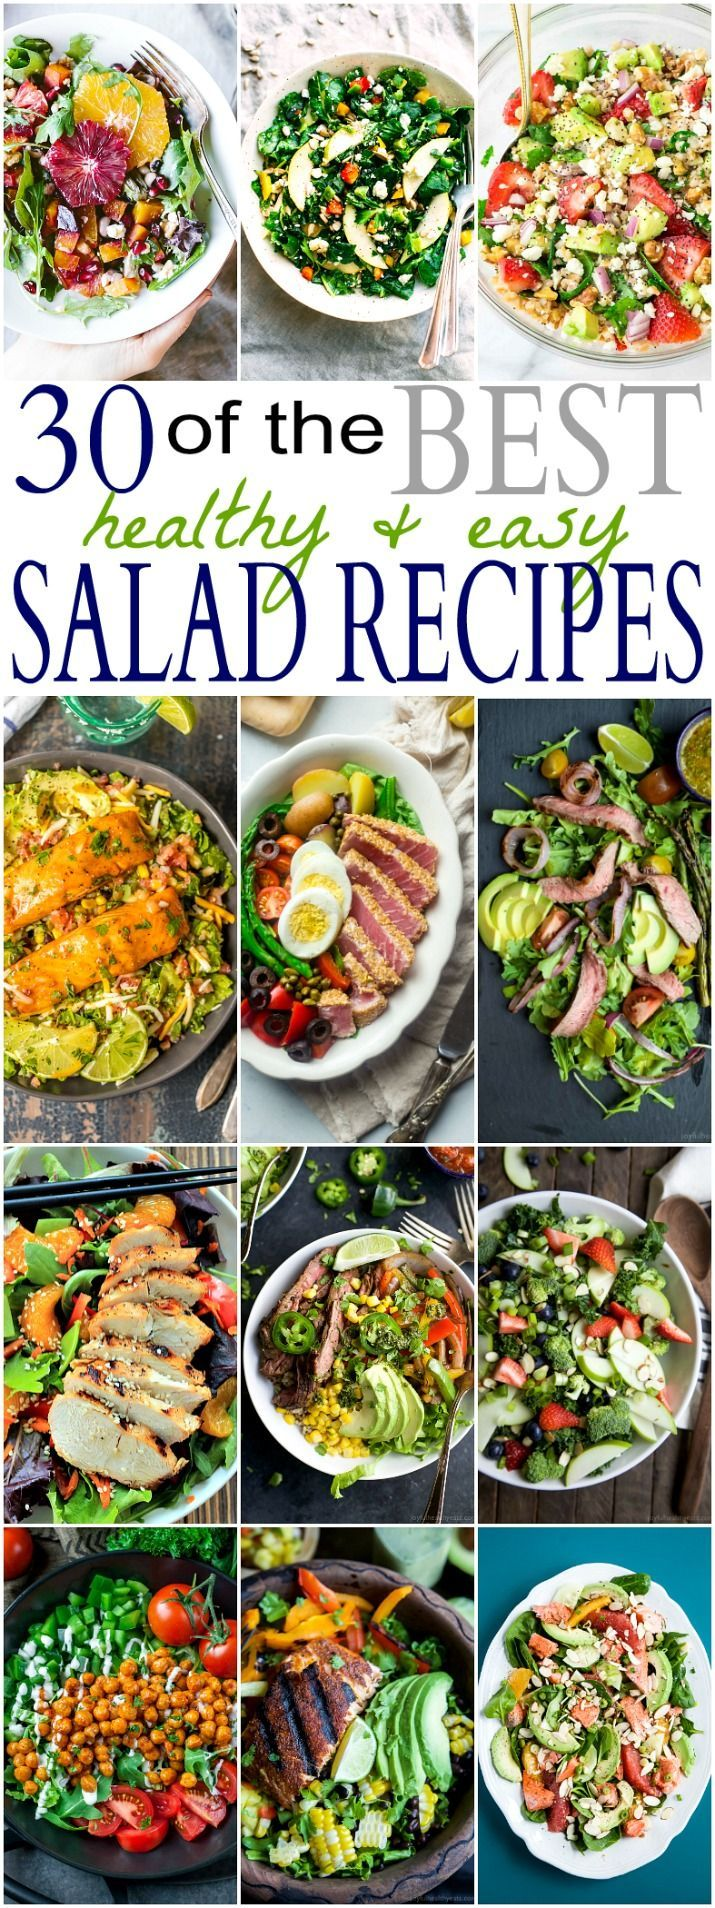 30 of the BEST Healthy & Easy Salad Recipes images